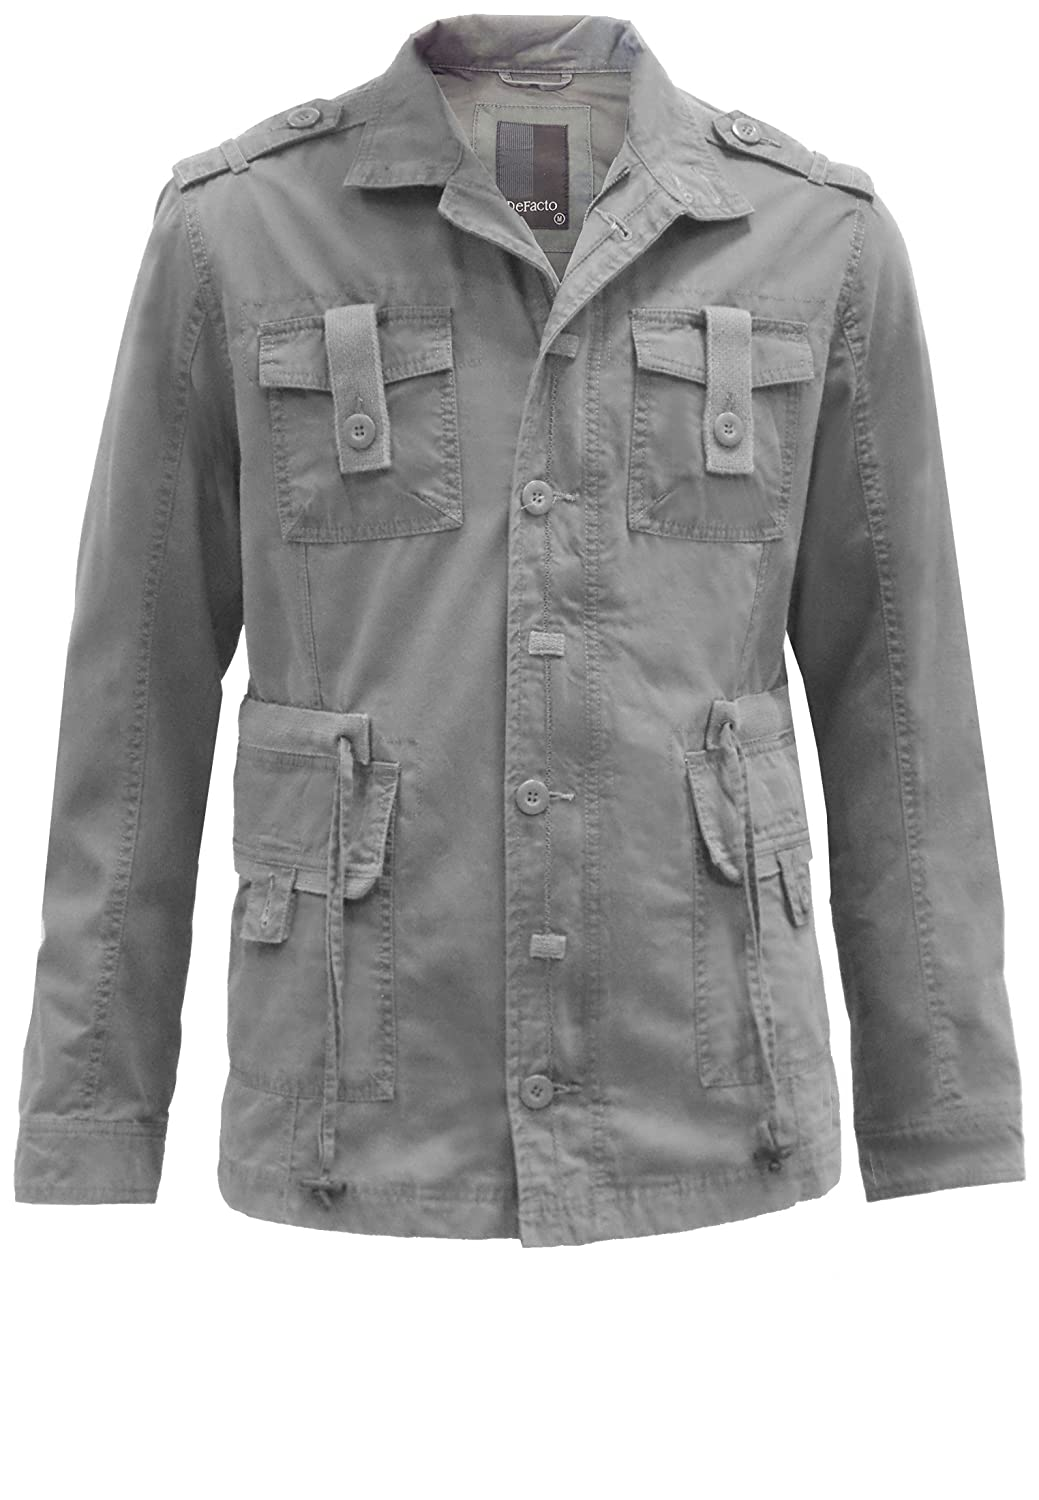 De Facto Men's Jacket Grey Grey Medium